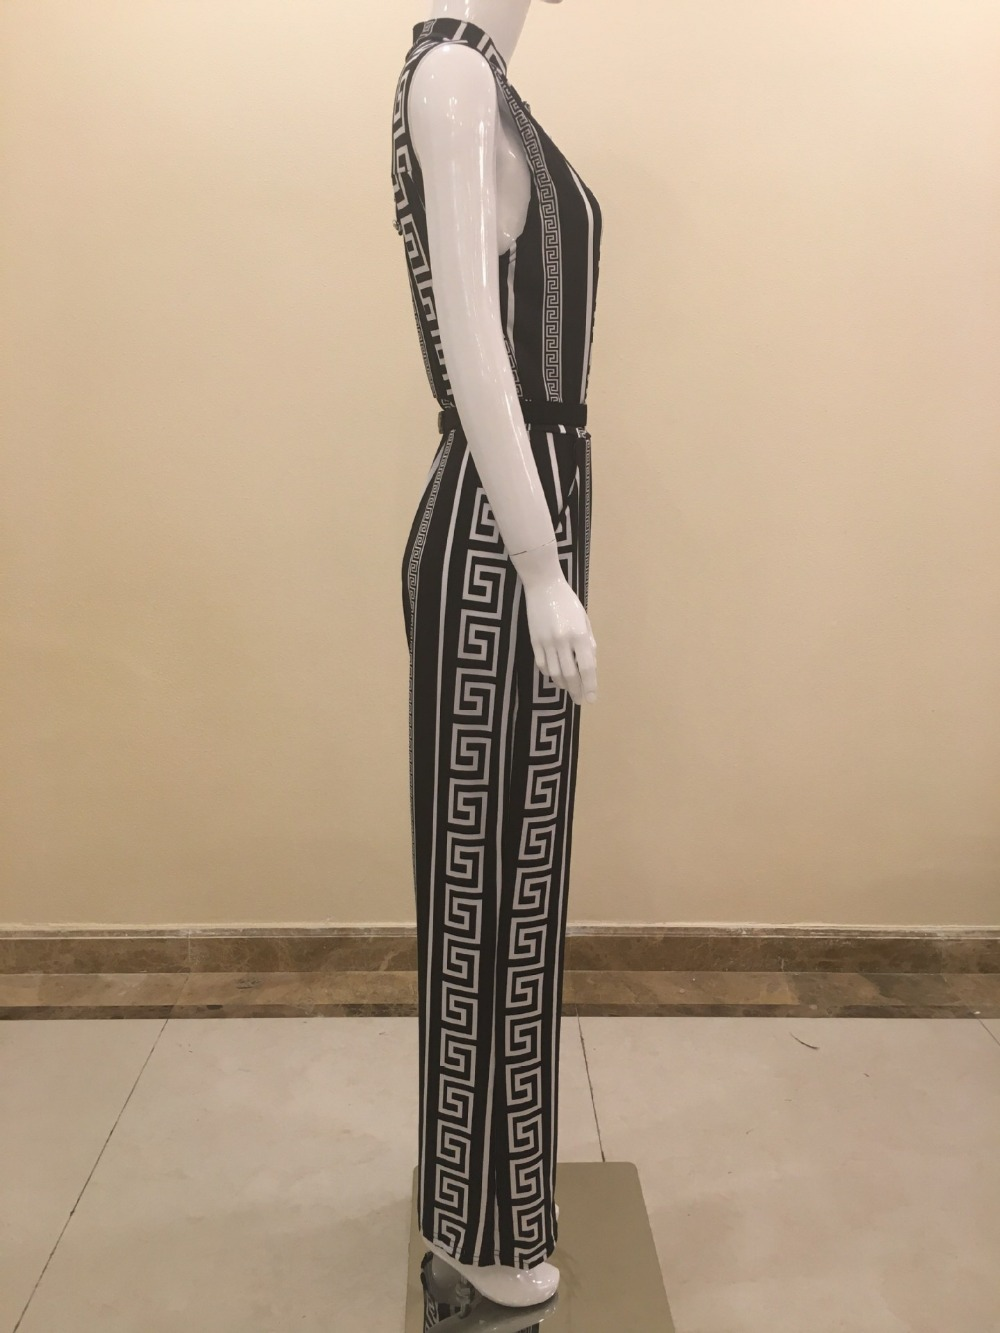 2017 autumn rompers womens jumpsuit Elegant One Piece long wide leg Party bandage printed white black fashion nova dungarees 9